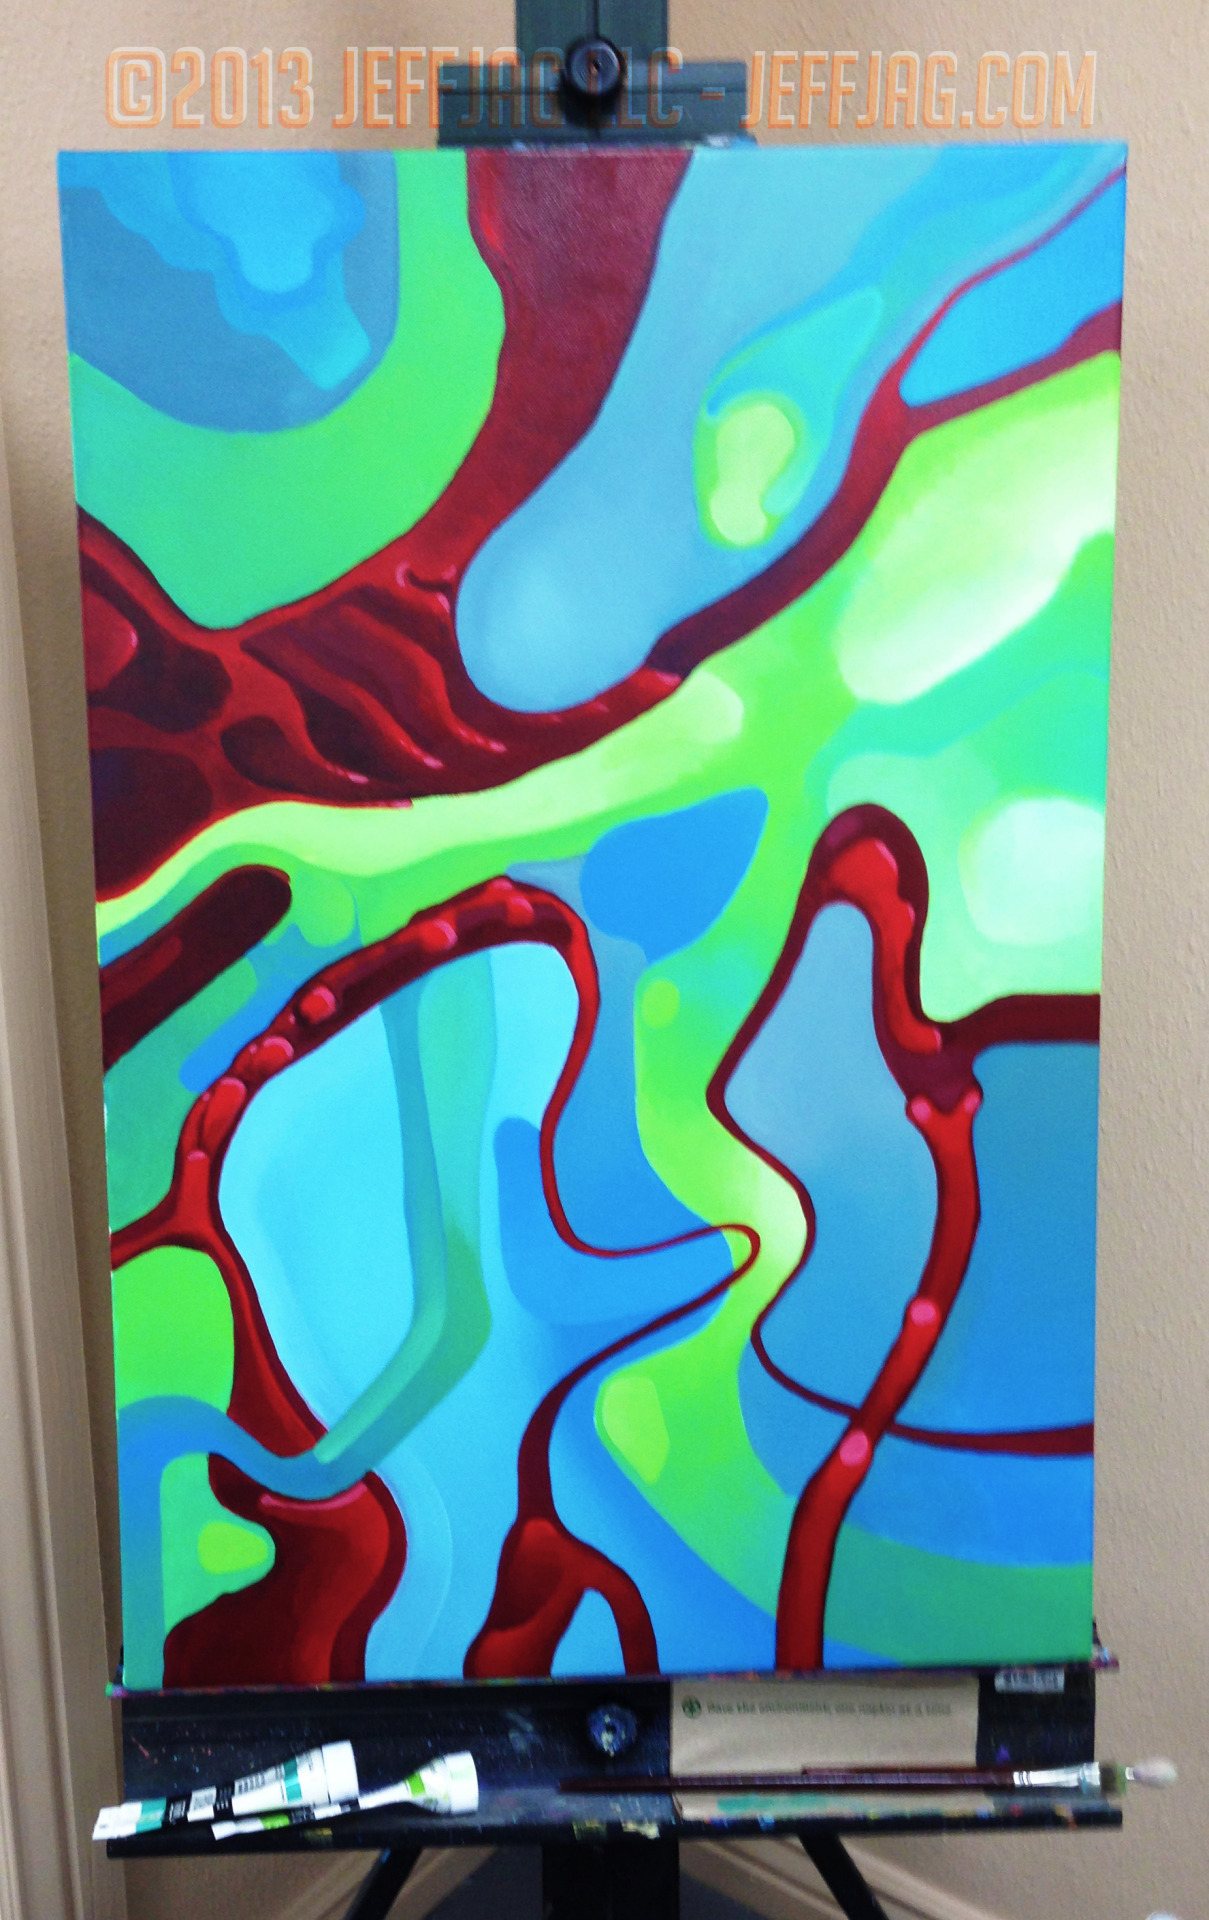 "©2013 jeffjag llc, Live, New, Acrylic Painting by JeffJag. RGB. 20""x30"" progress 31. #HOTMAY"